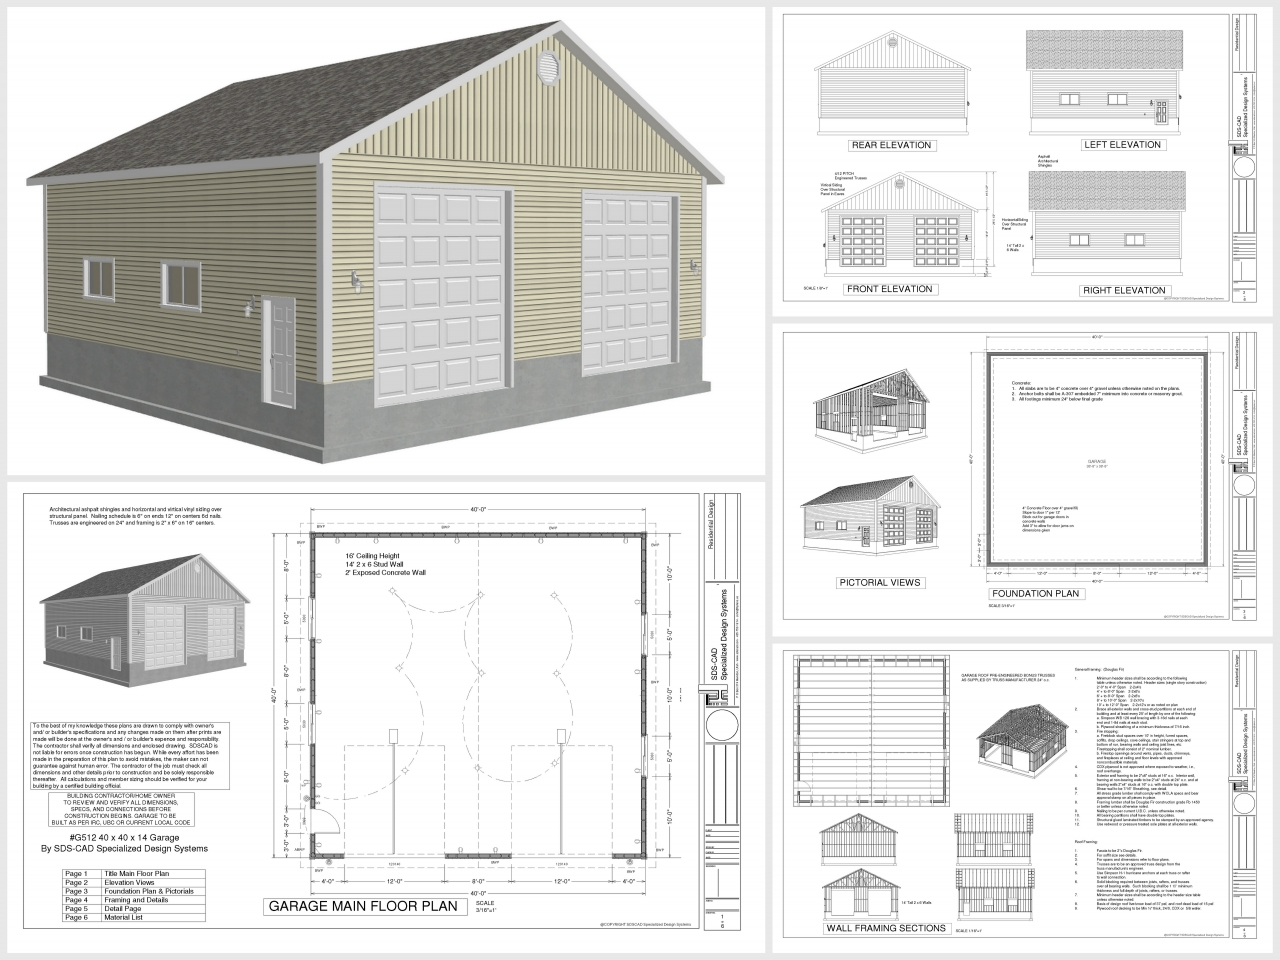 Design Blueprints For A Garage: Free Standing Garage Plans Free Garage Plans, 40x40 House